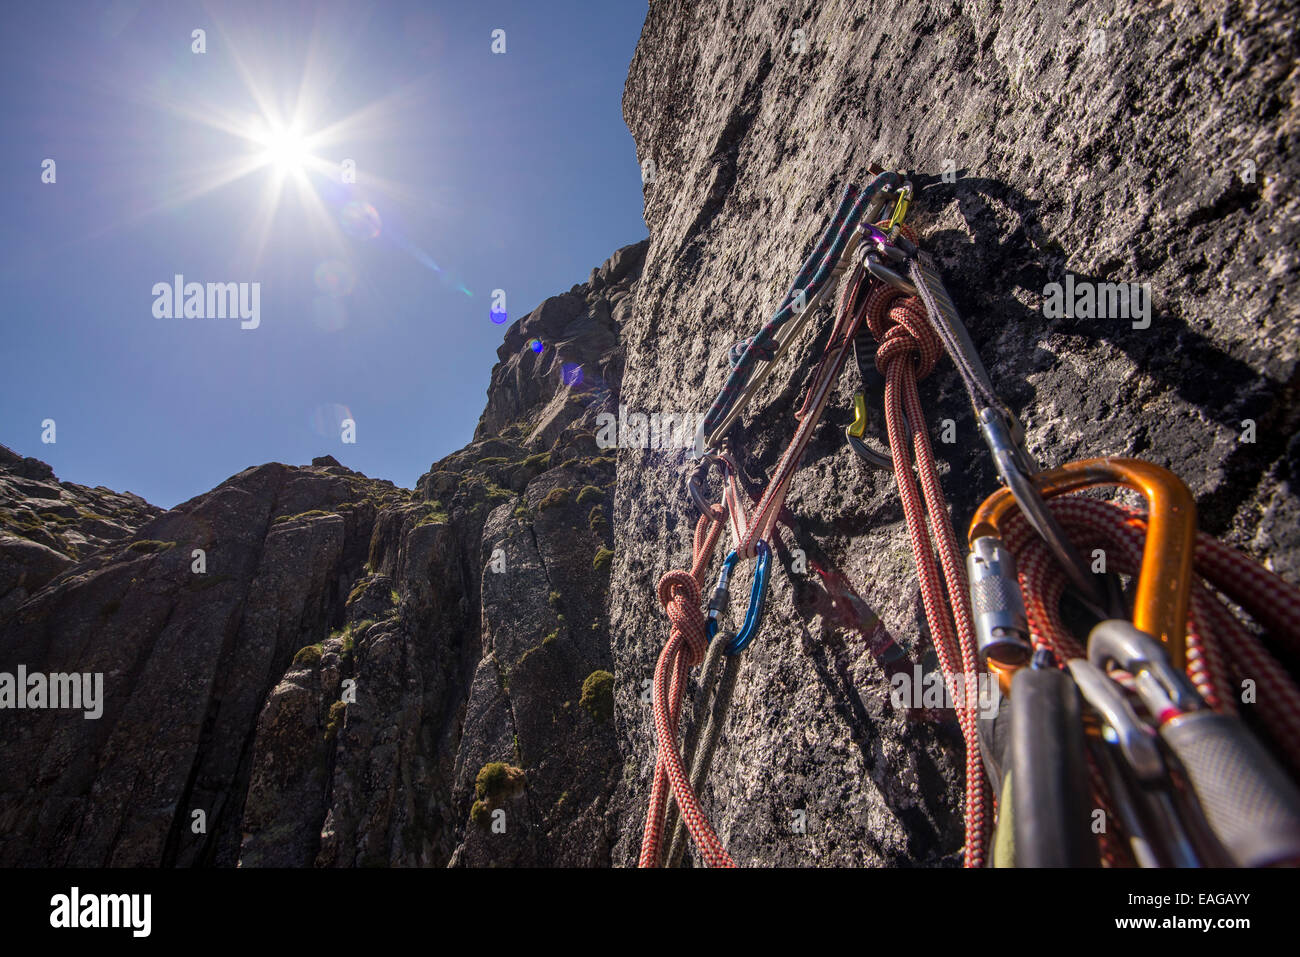 A busy belay. - Stock Image